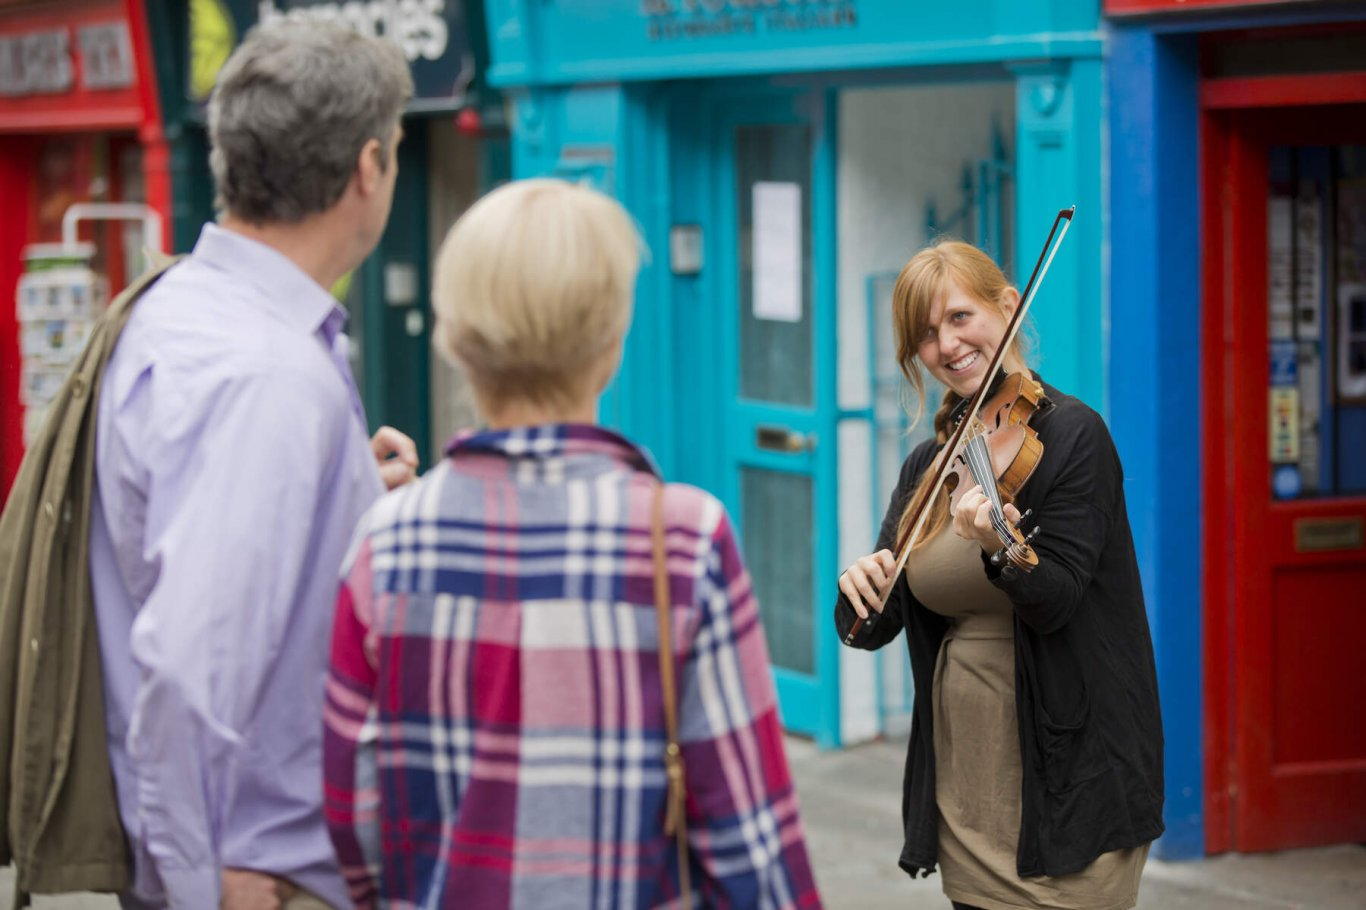 Couple enjoying a busker playing a fiddle on Galway's Shop Street on a day tour from Dublin